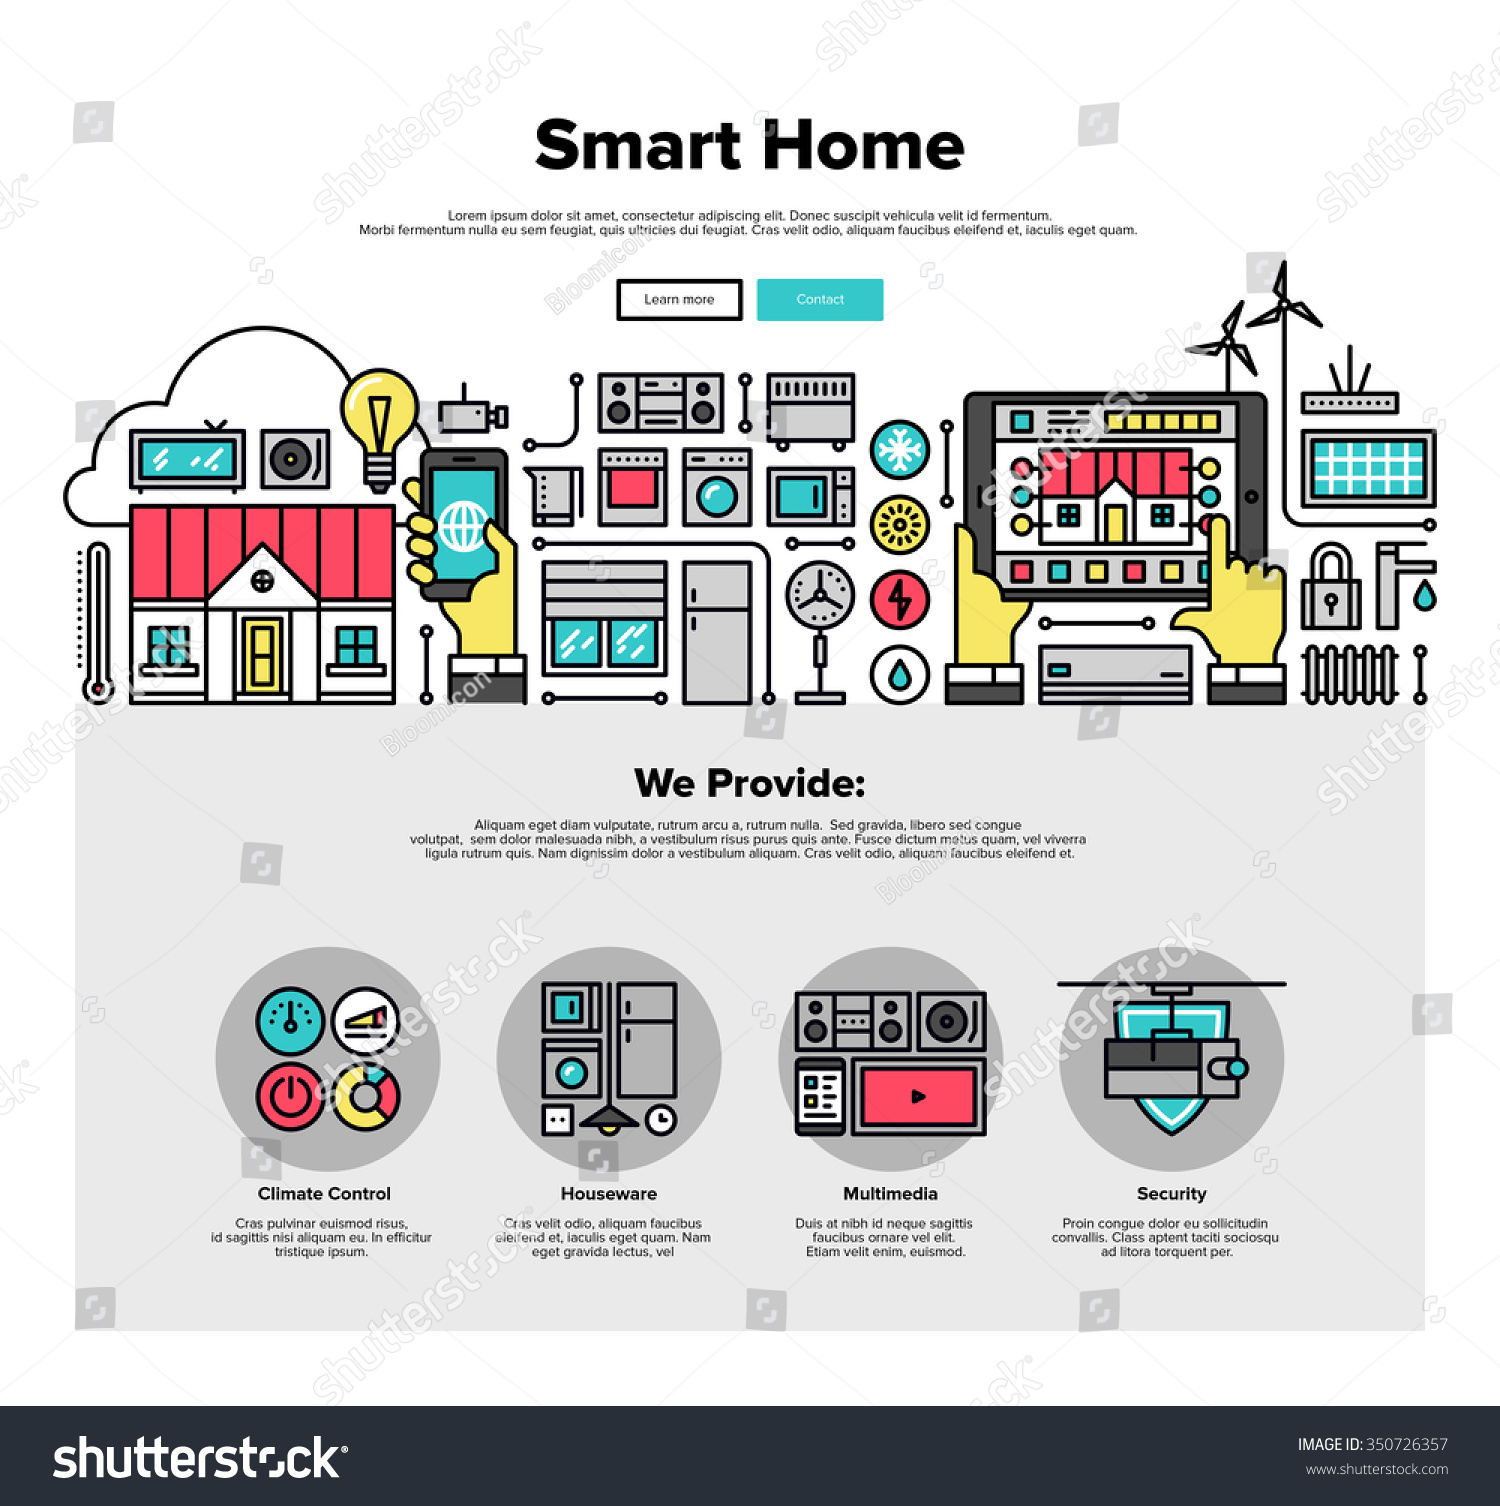 One page web design template thin stock vector 350726357 shutterstock - How to design a smart home ...